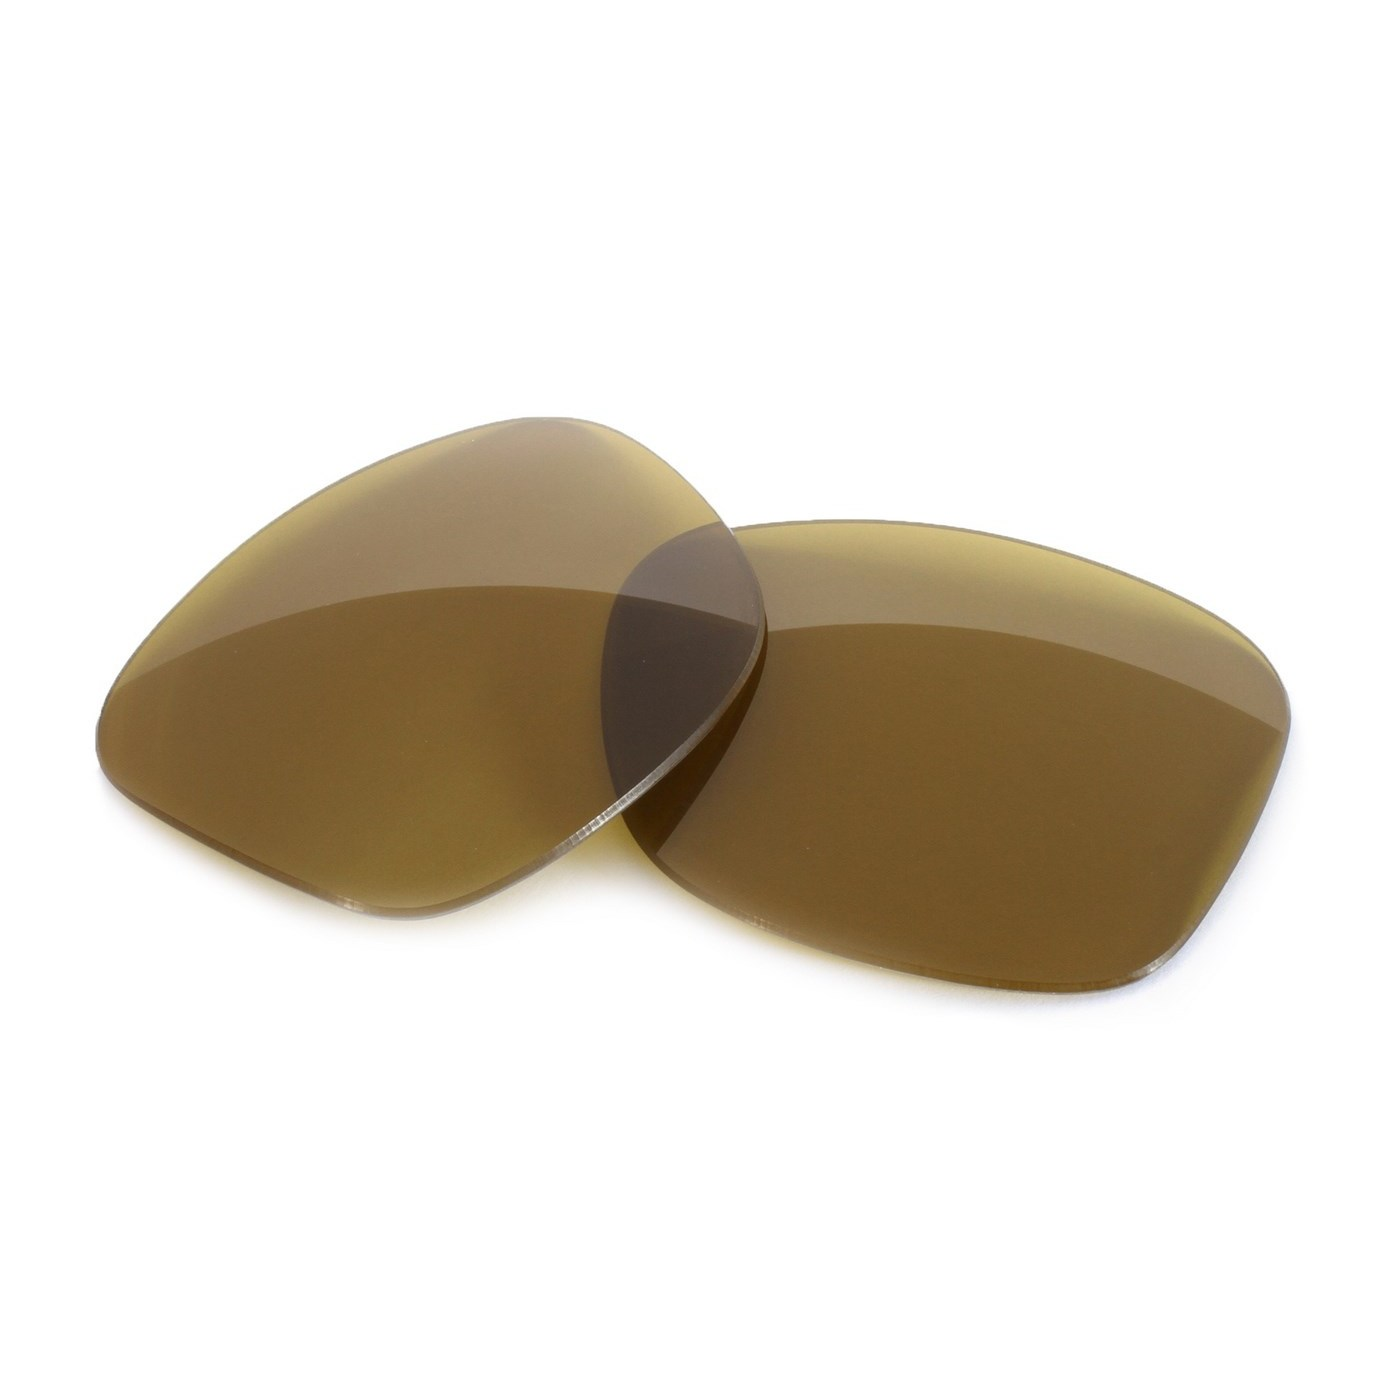 Fuse-Lenses-Polarized-Replacement-Lenses-for-Persol-9649-S-52mm thumbnail 7